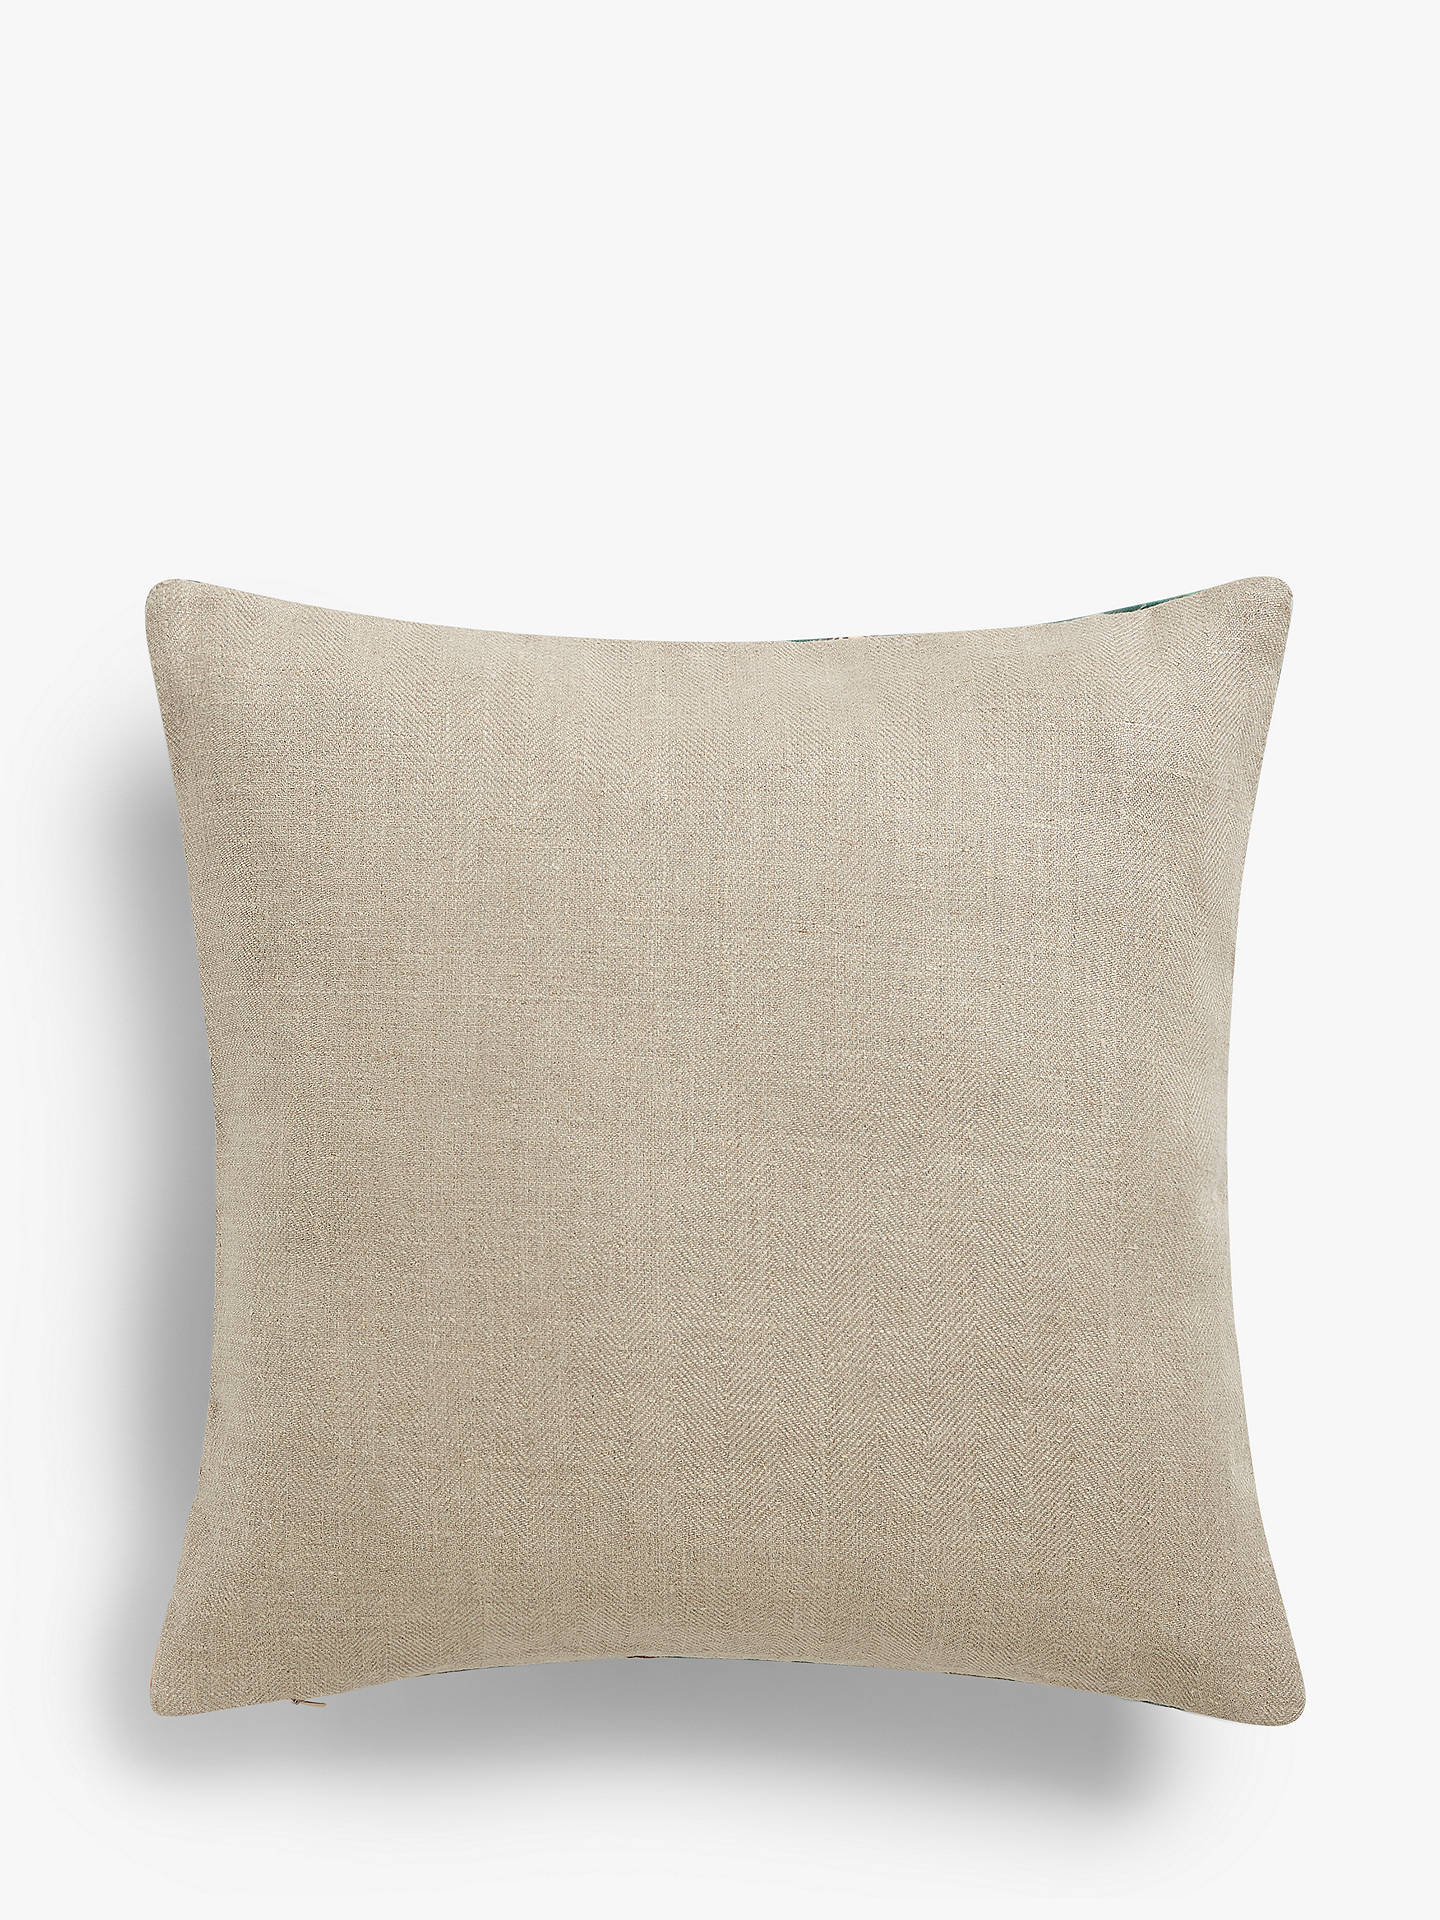 Buy Sanderson National Trust Summer Peony Velvet Cushion, Newby Green Online at johnlewis.com